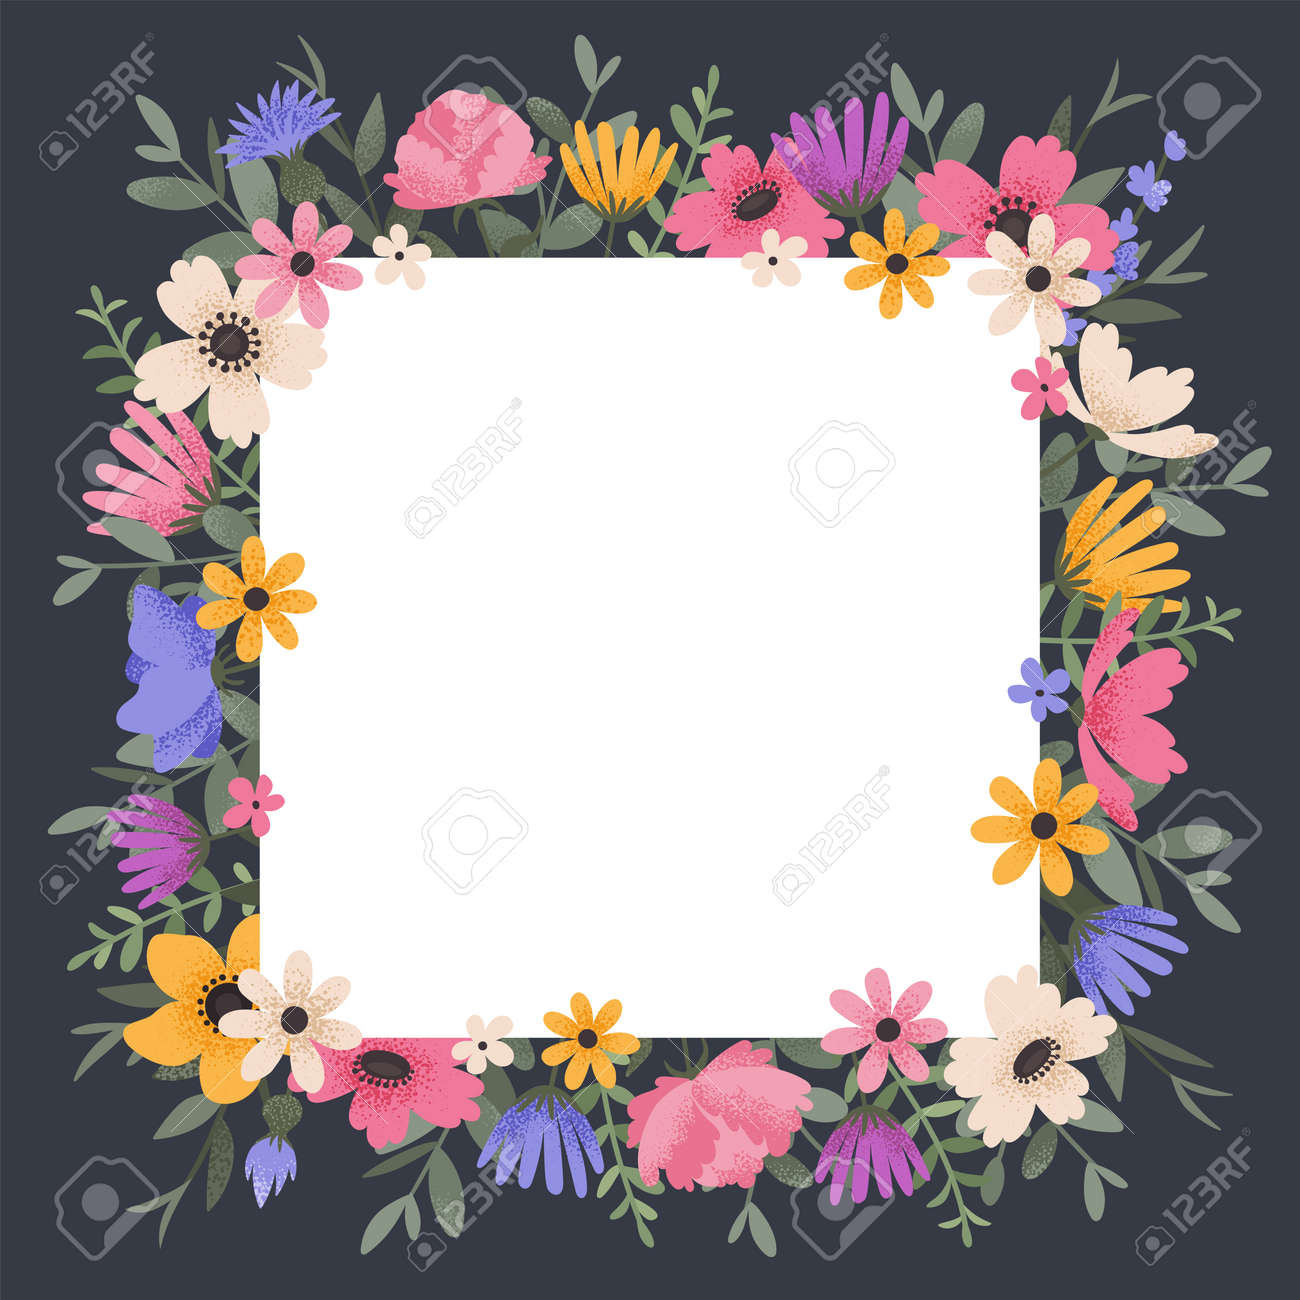 Floral background design with summer flowers. Greeting card with place for text. Template for invitation card with beautiful peonies and anemone flowers. Vector illustration - 164593072